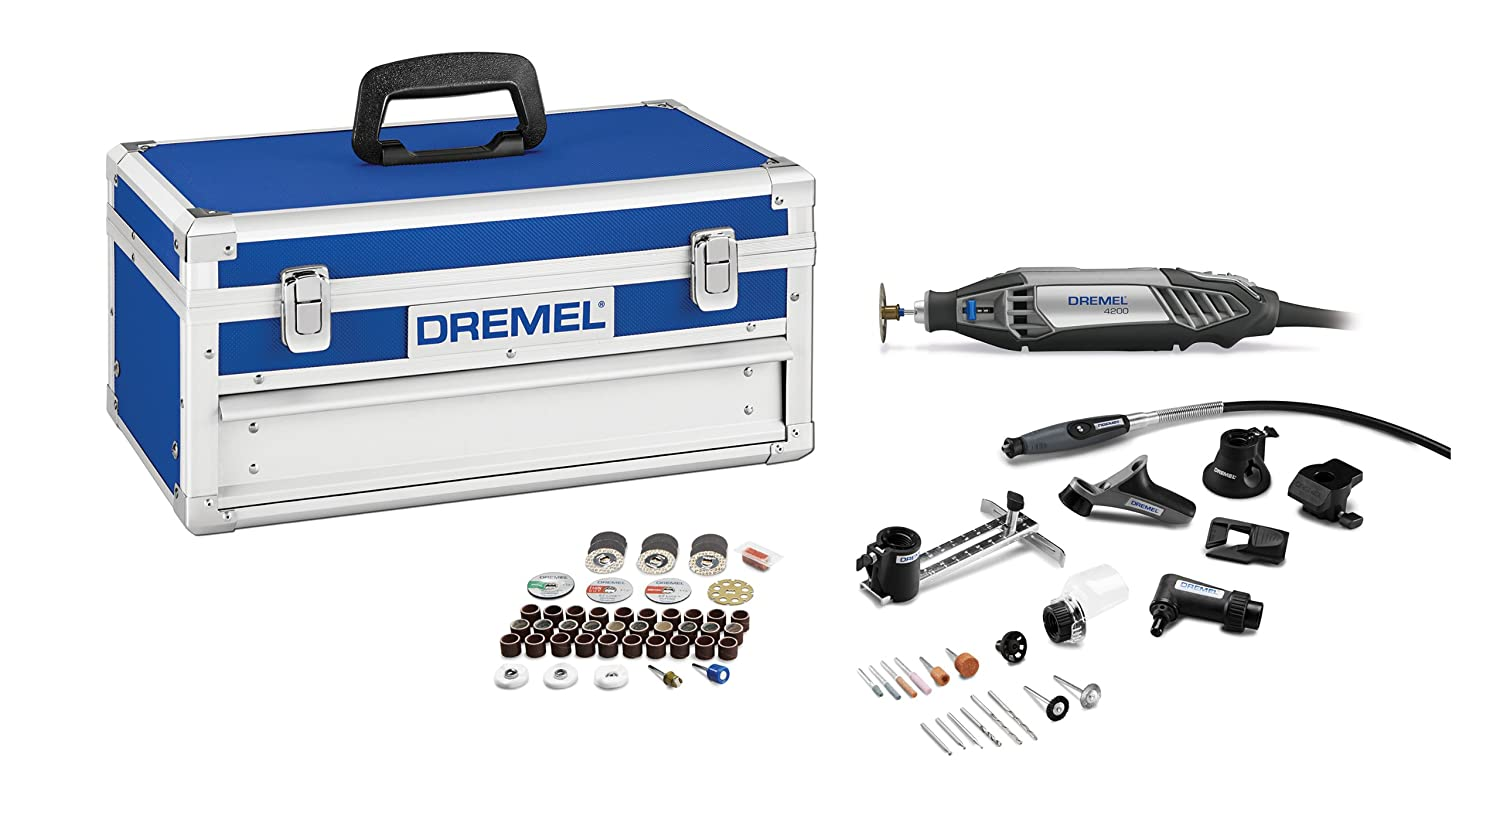 Dremel 4200 8 64 Corded Rotary Tool Kit With Ez Change 77 Piece Multipro Automotive Set 60 Pcs Platinum Edition Woodworking Project Kits